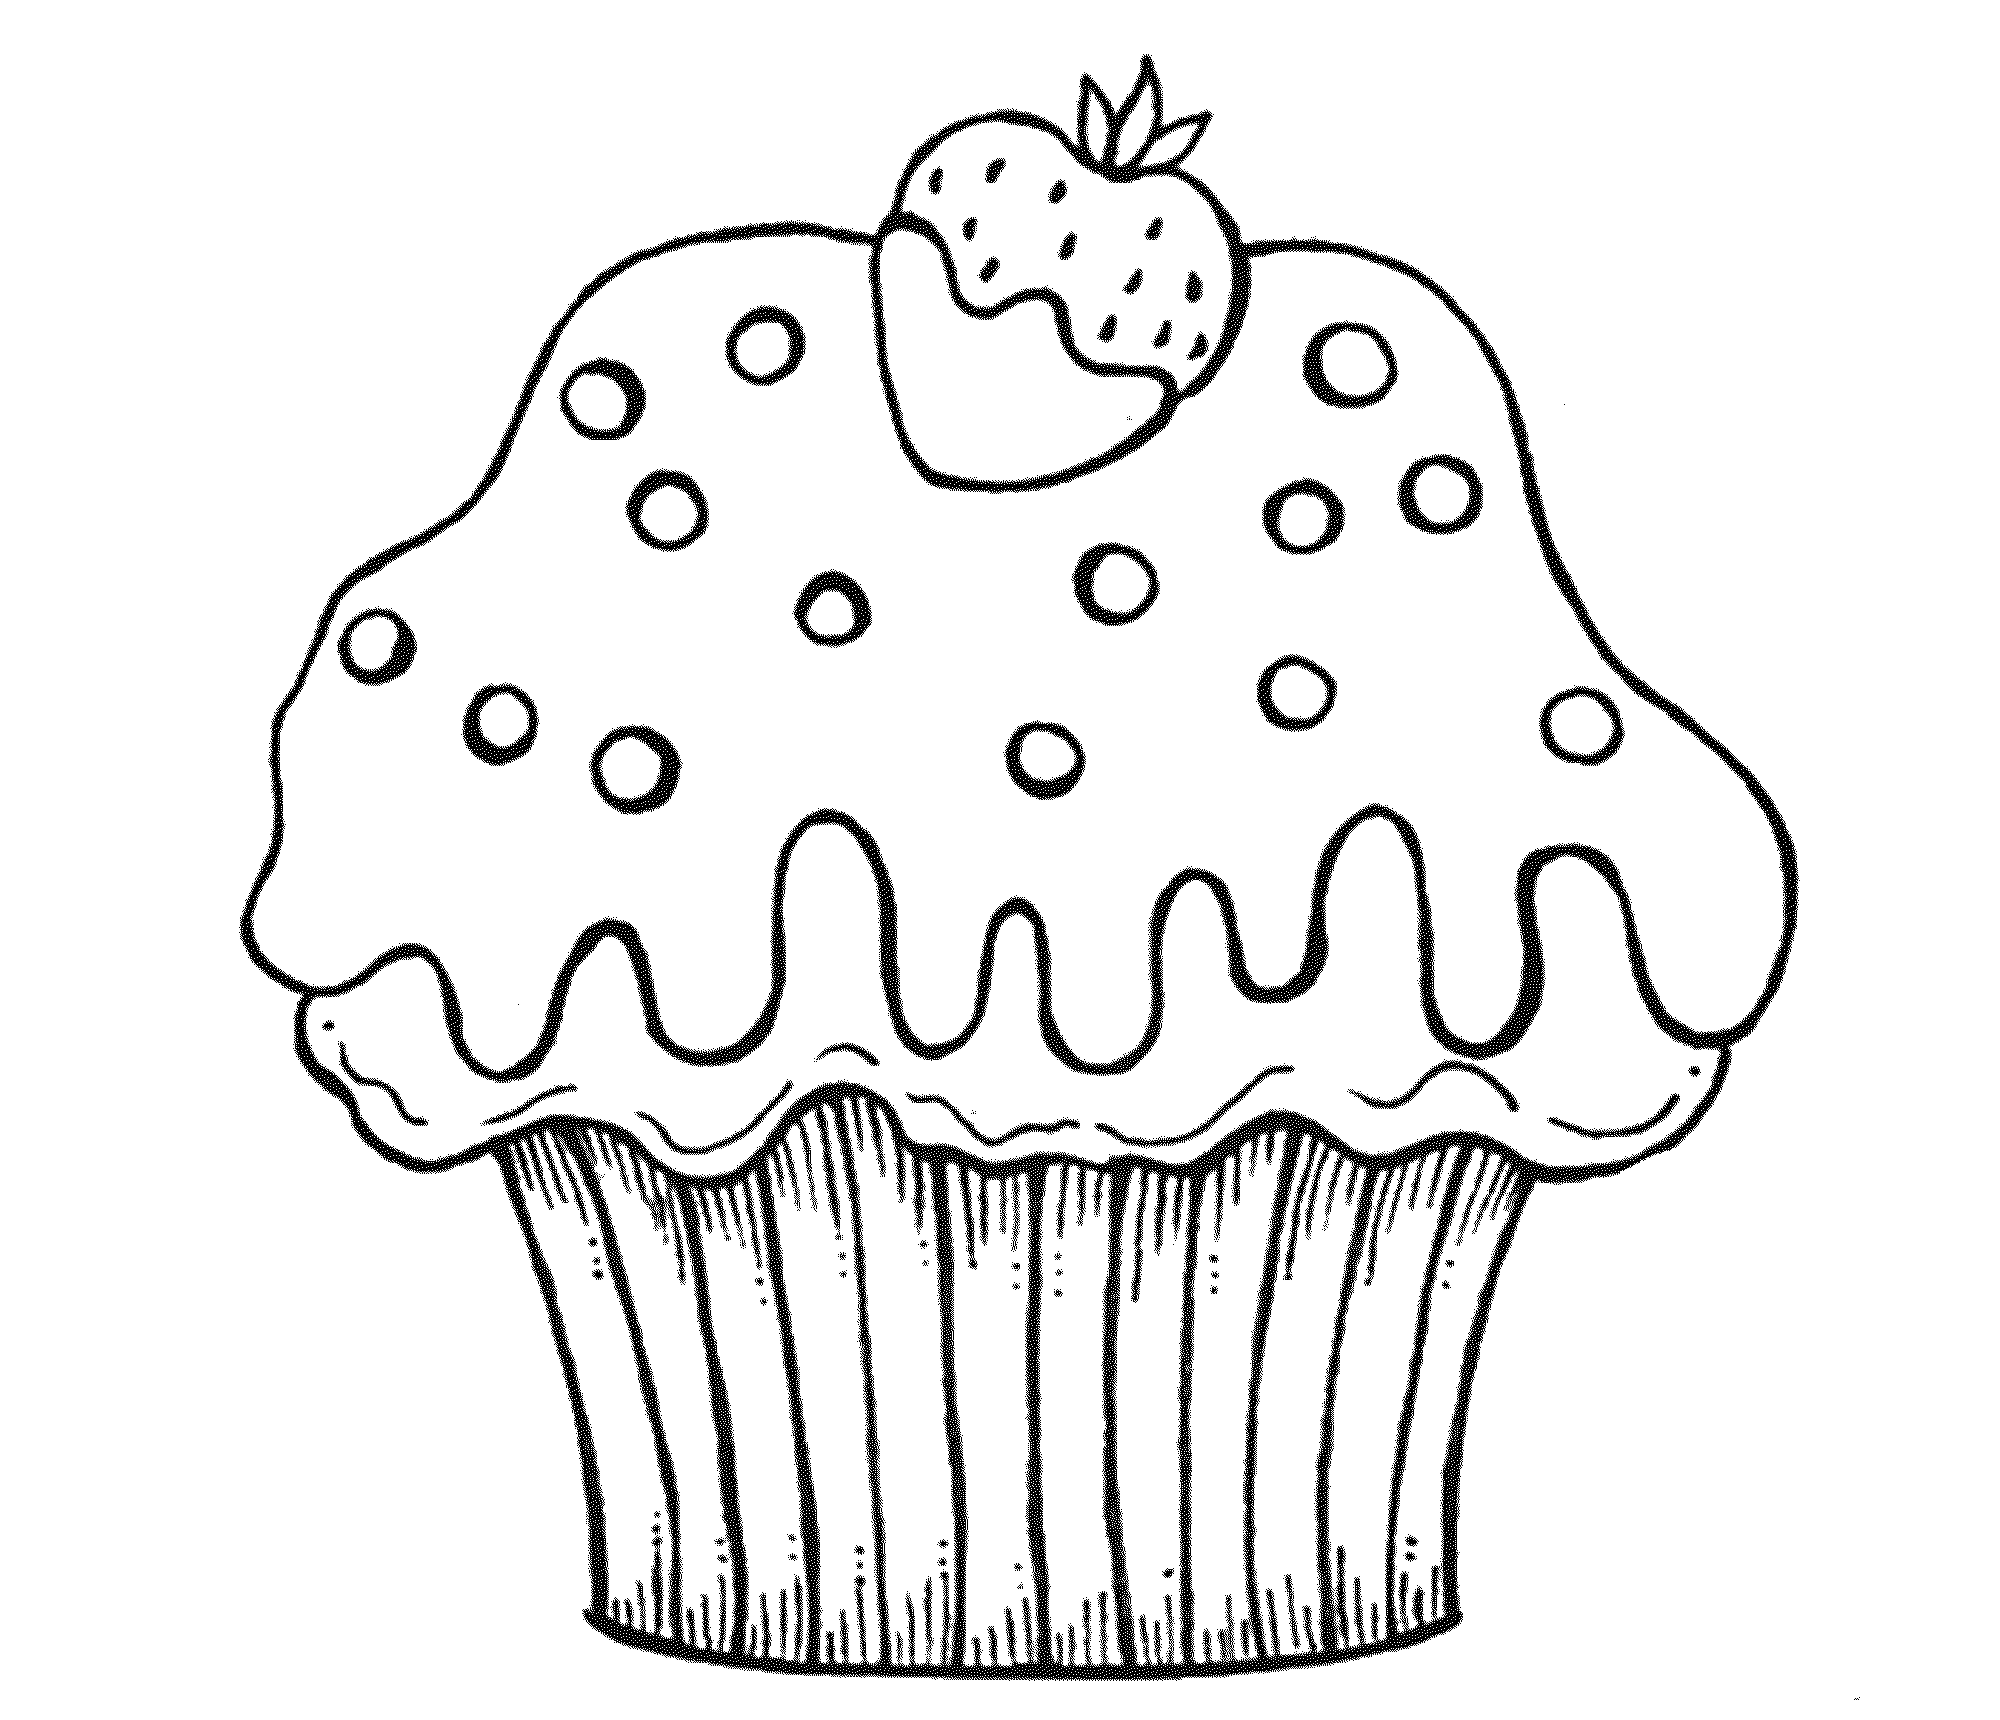 2000x1720 Cute Cupcake Coloring Sheets – Color Bros